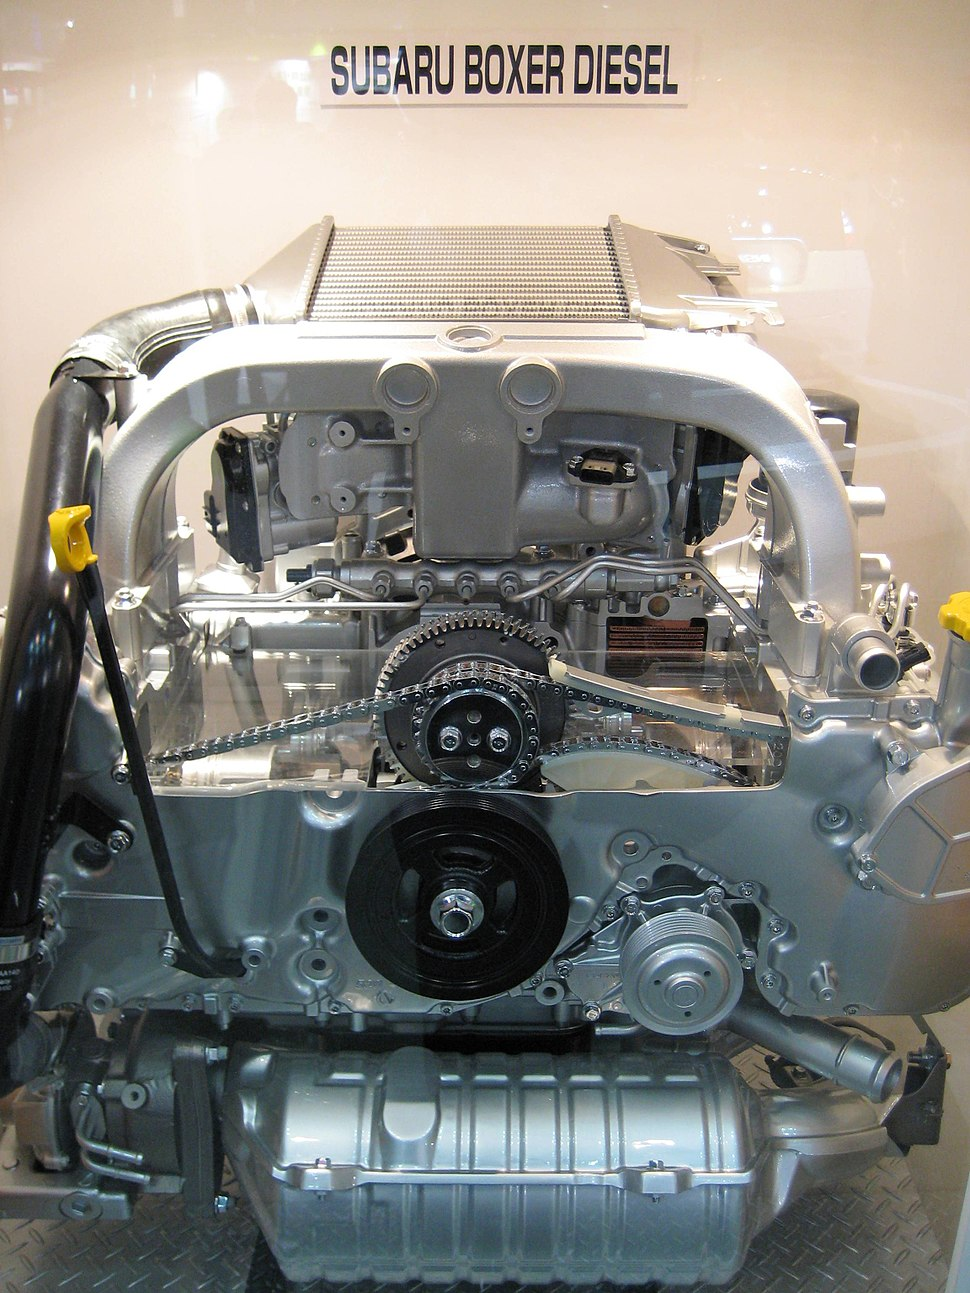 hight resolution of subaru boxer diesel engine for 2008 legacy in eco products 2008